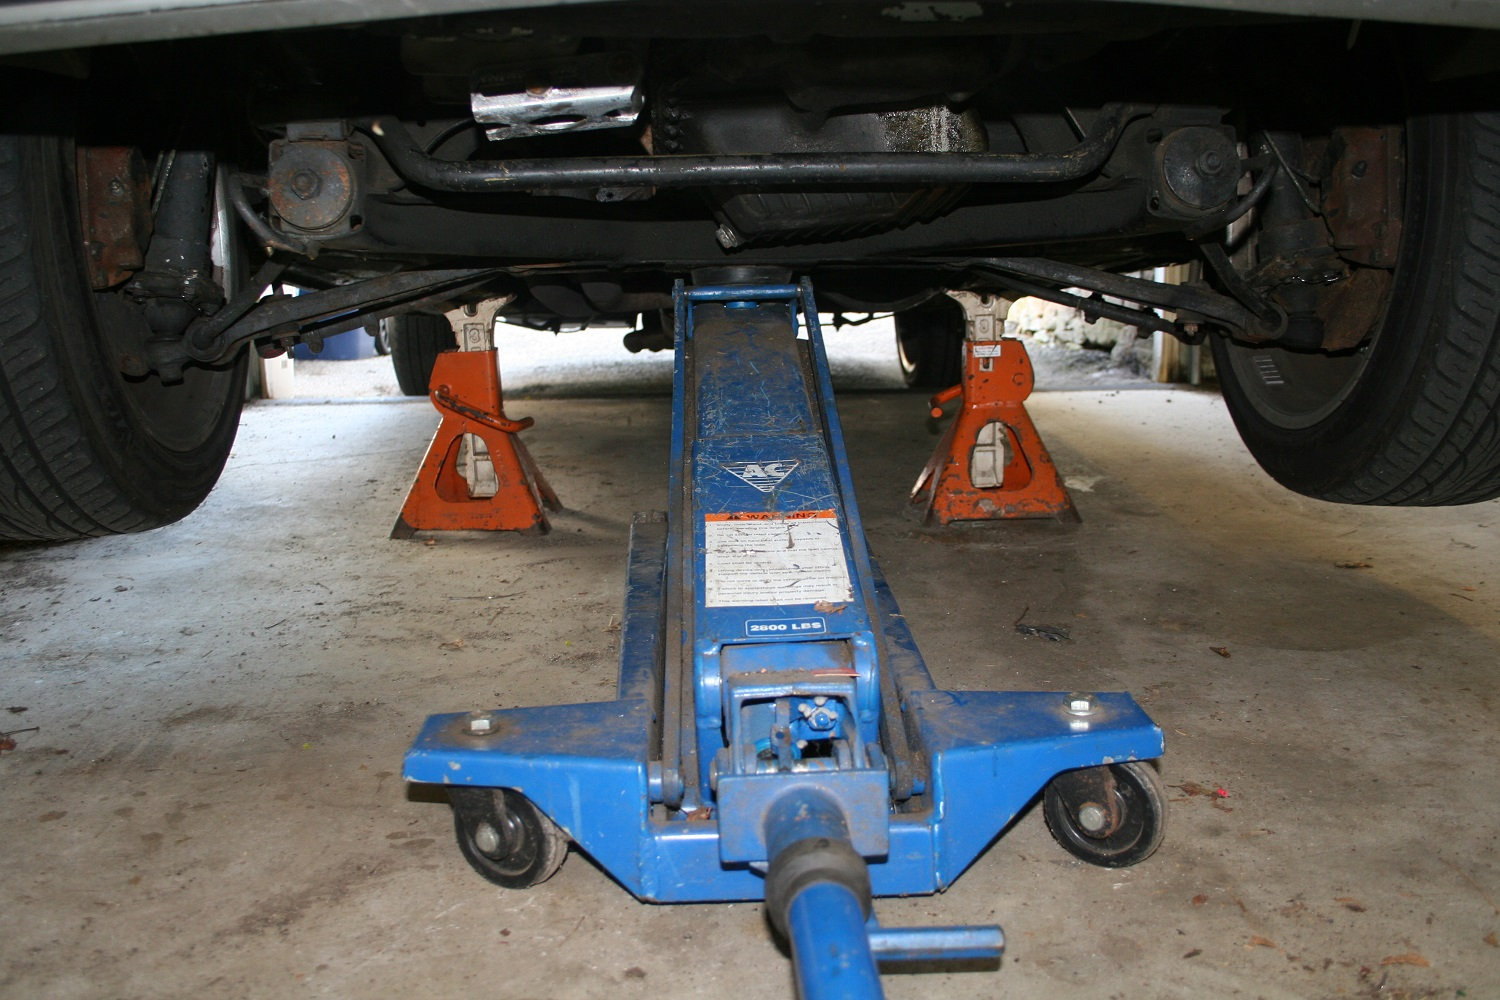 Always double-jack a car (jack it up, set it down on jack stands, and leave the floor jack in place as a back up) before putting any part of your body beneath it.